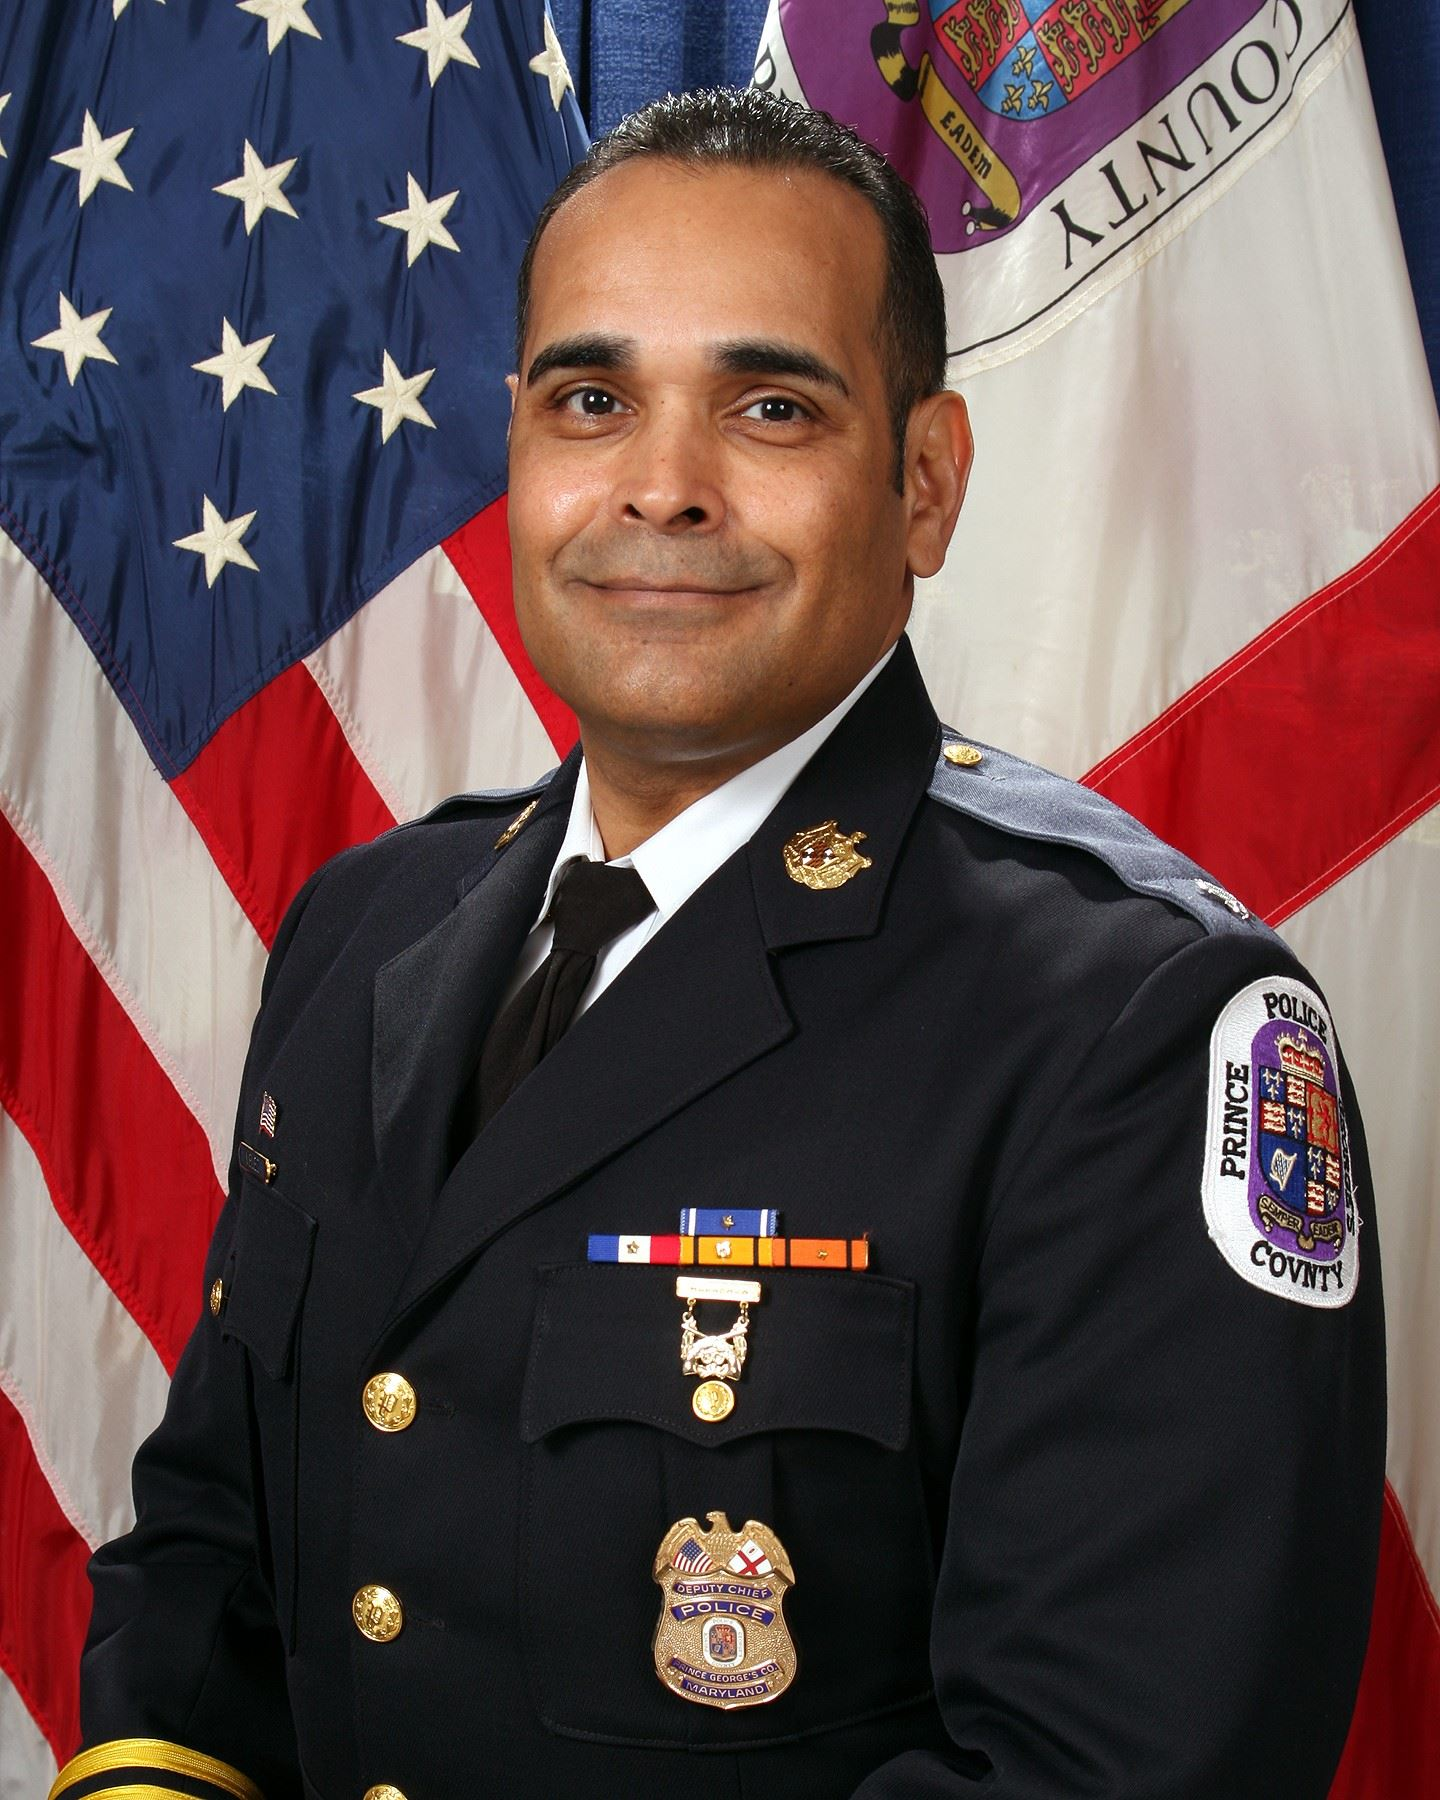 Assistant Chief Hector Velez